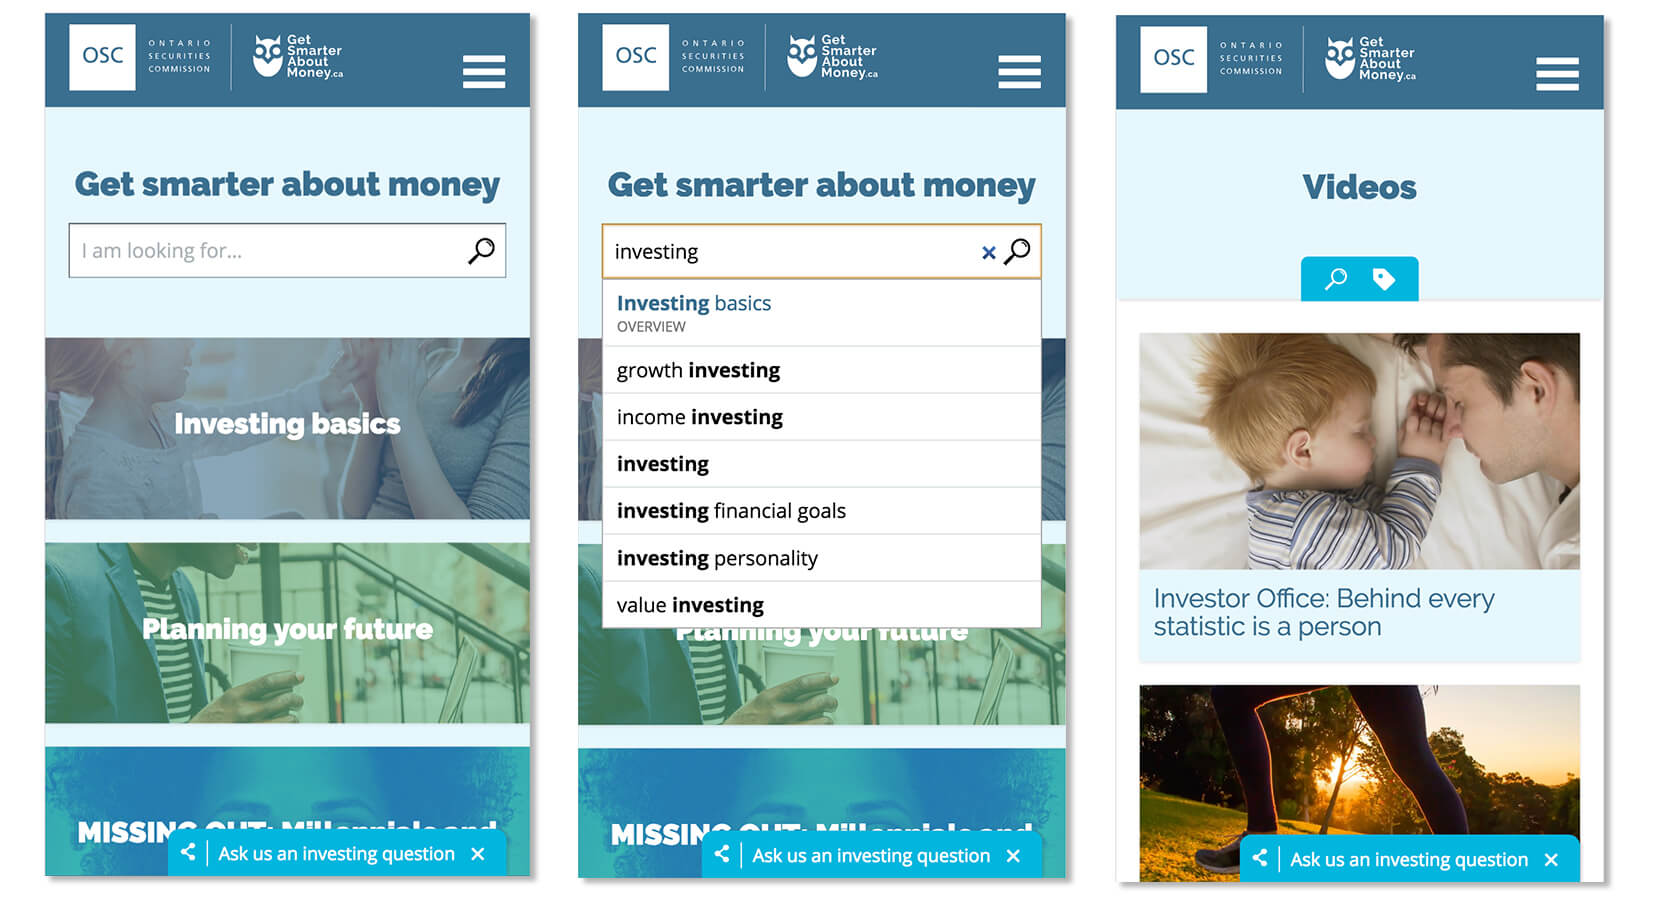 image of Ontario Securities Commission's Investor Office  Wins 2017 Best Information Services Mobile Website Mobile WebAward for Ontario Securities Commission's GetSmarterAboutMoney.ca